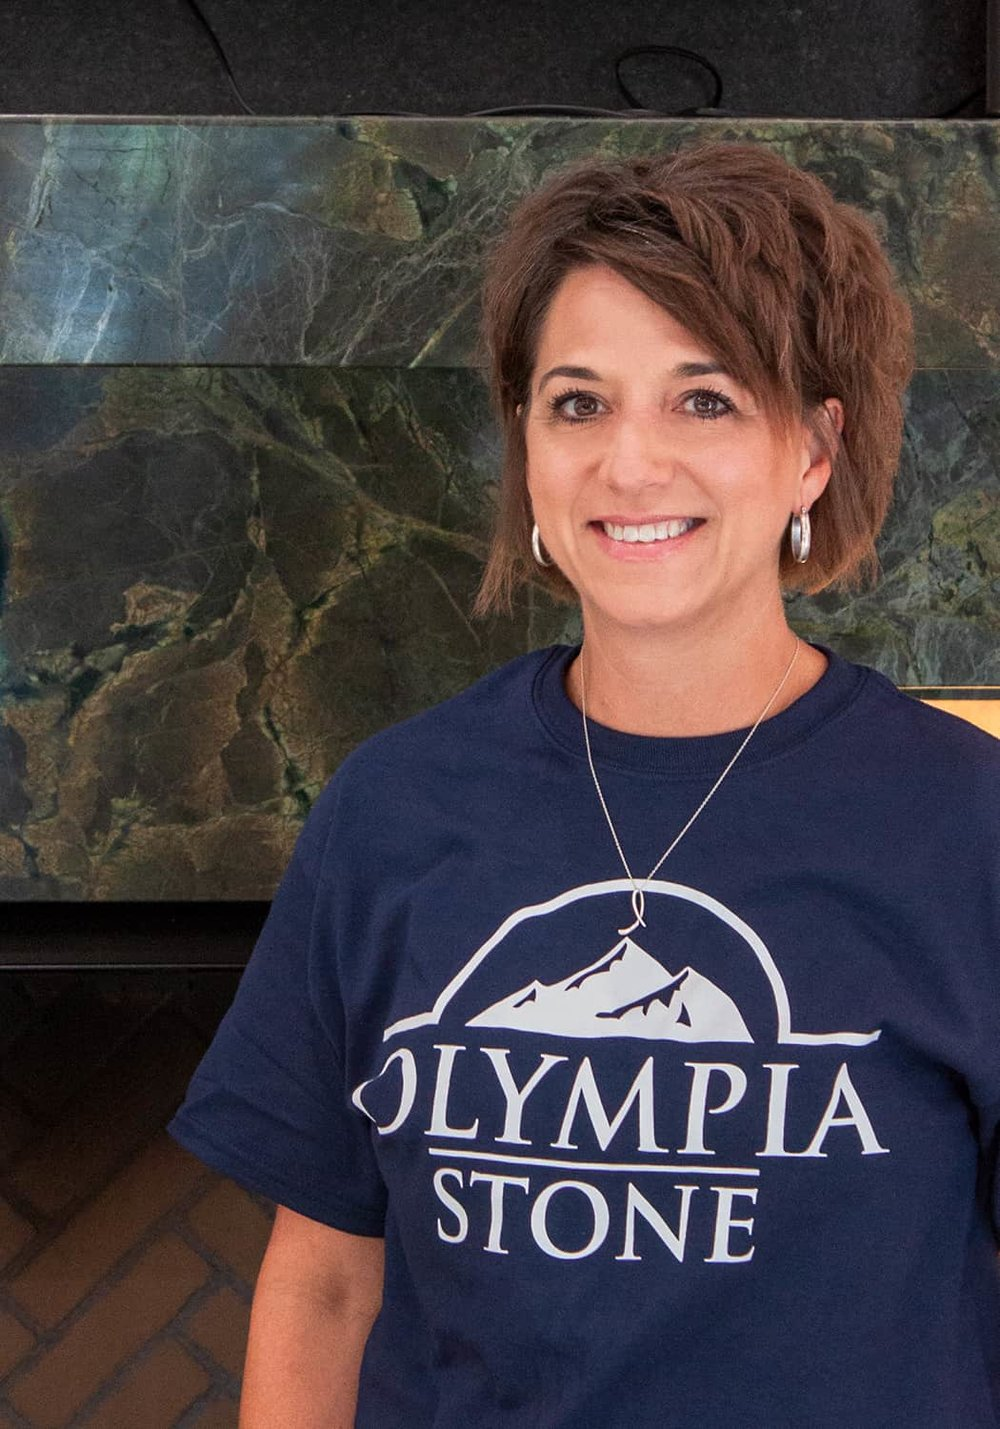 Olympia Stone Manager Lori Van Cleave